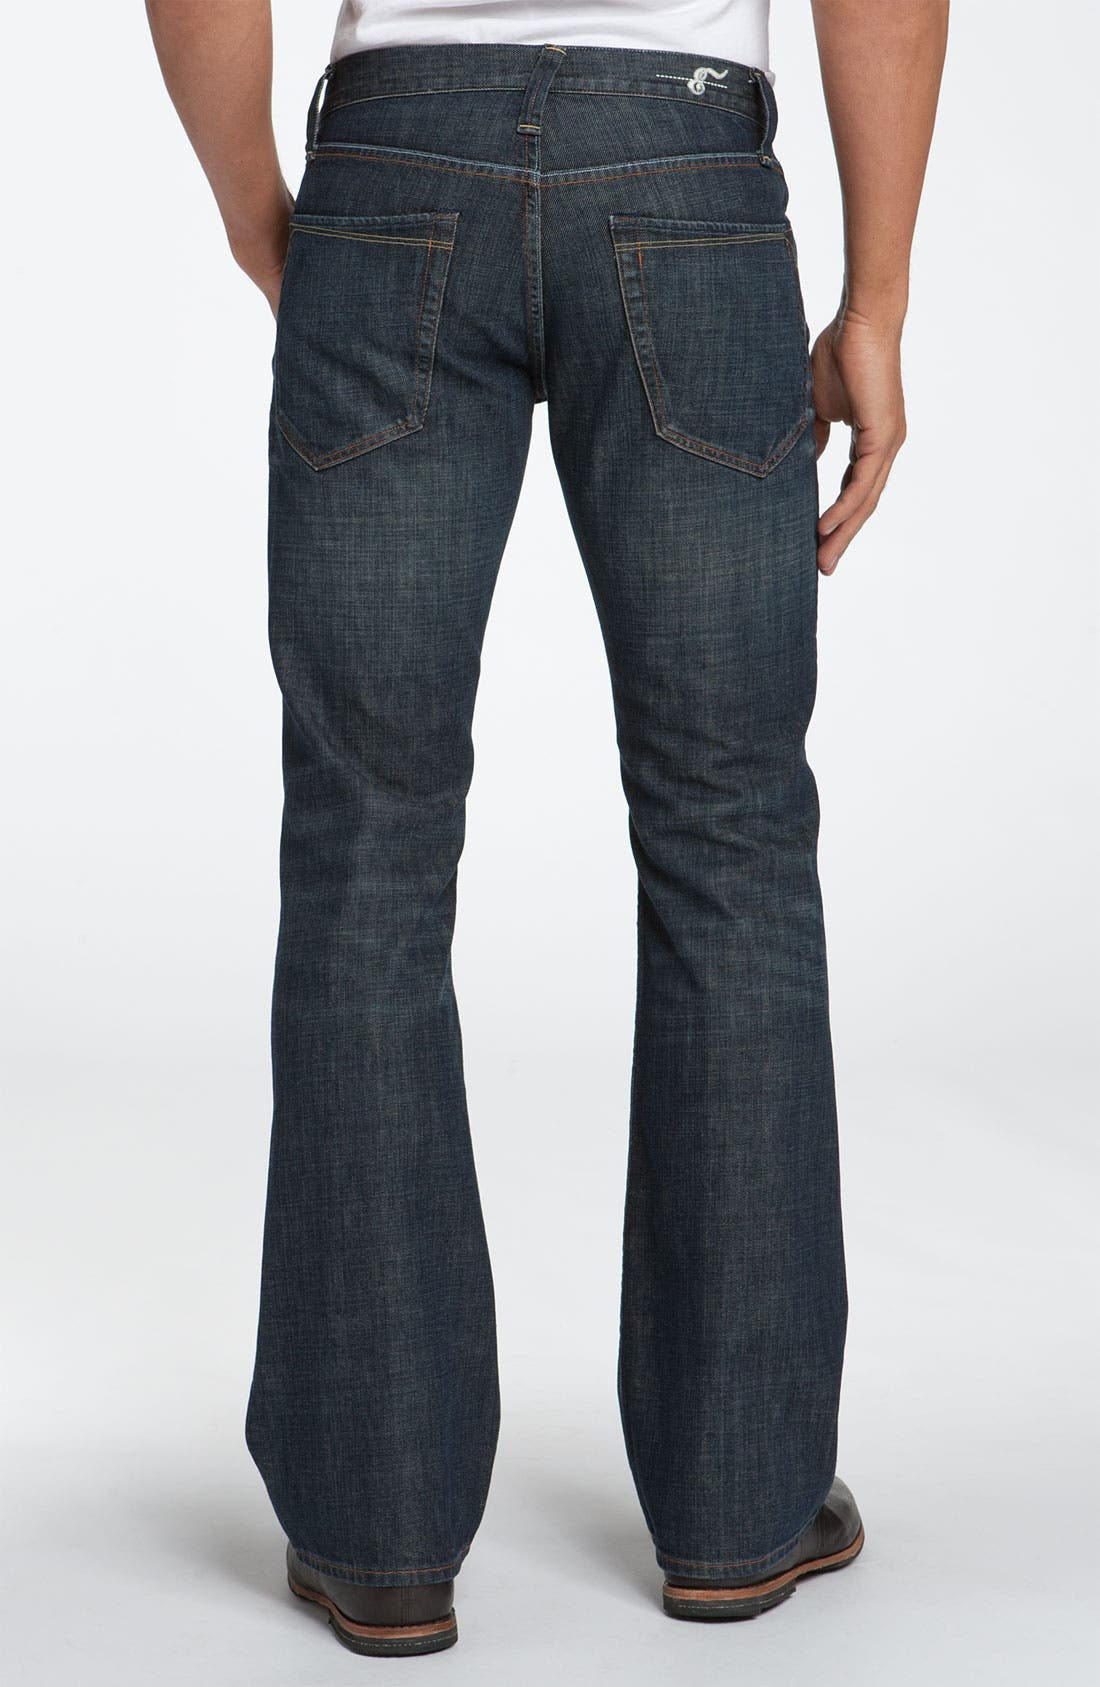 Alternate Image 1 Selected - Earnest Sewn 'Hutch' Bootcut Jeans (Maz Dark)